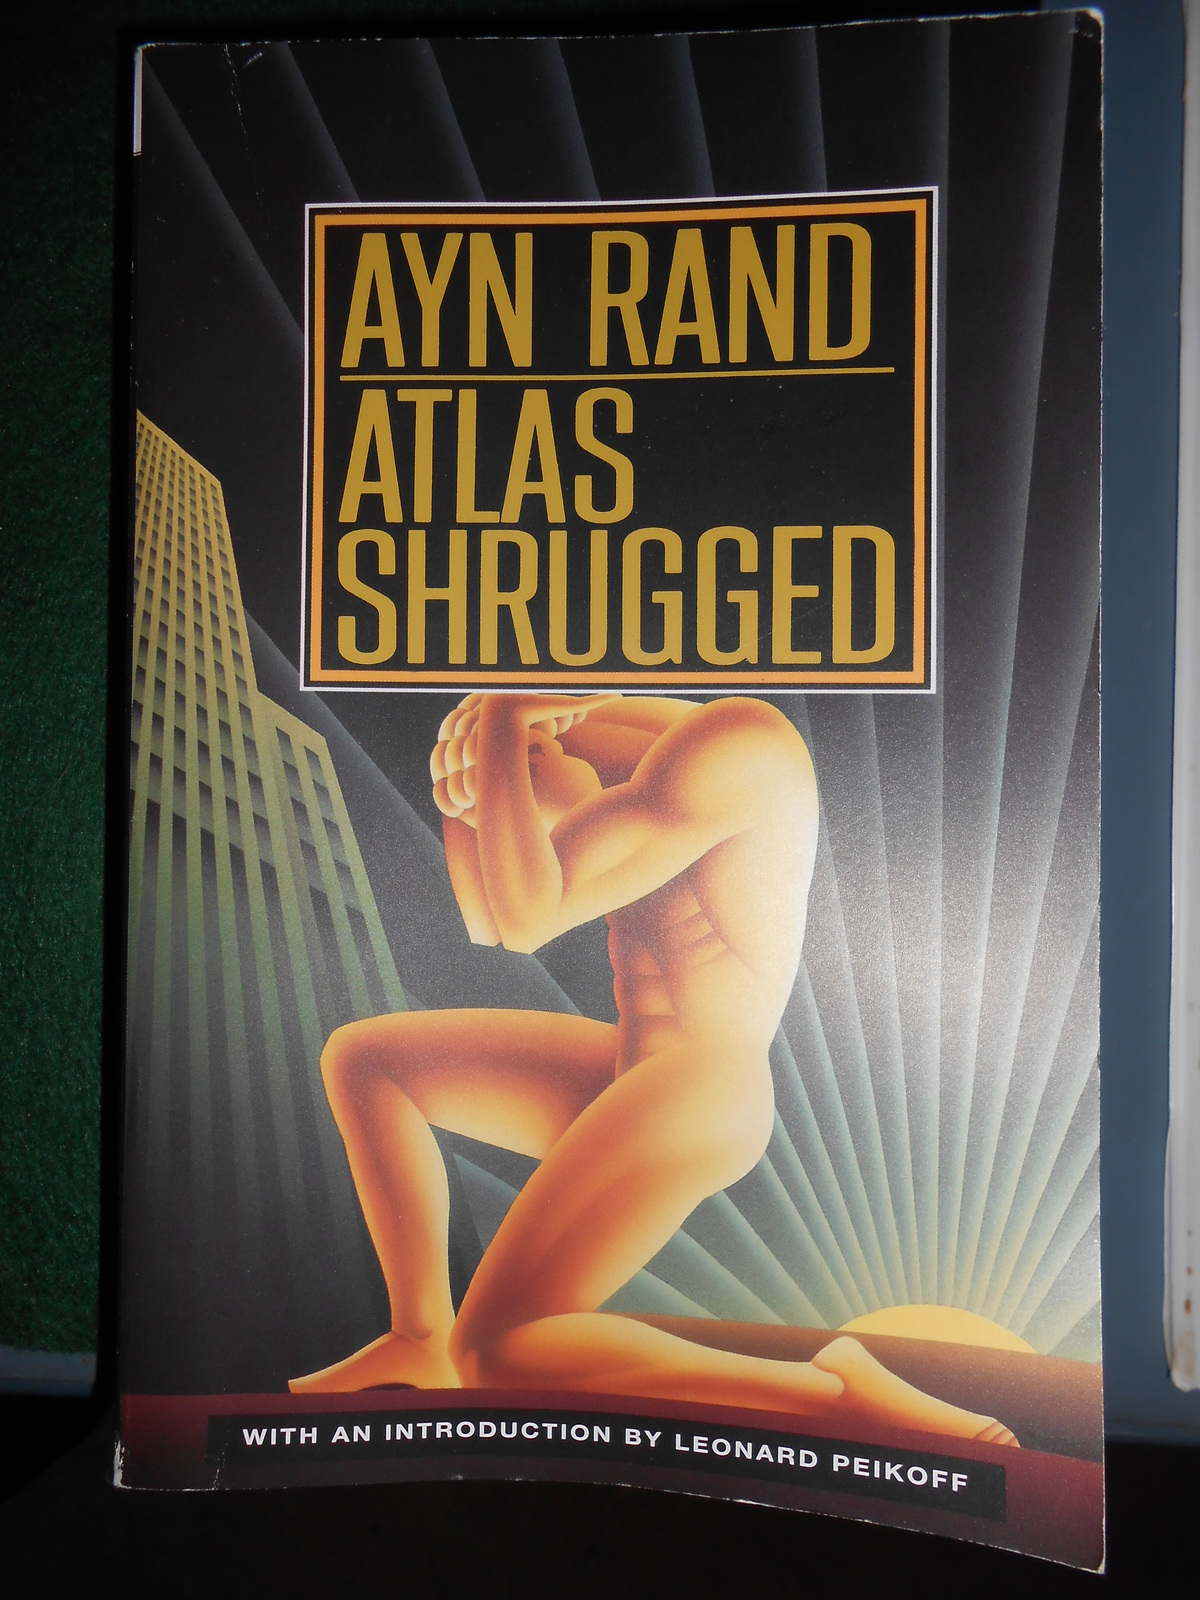 atlas shrugged essay Each year the ayn rand institute (ari), a united states organization, awards more than us$130,000 in prizes to over 750 students who distinguish themselves in high school essay contests on anthem, the fountainhead and atlas shrugged.